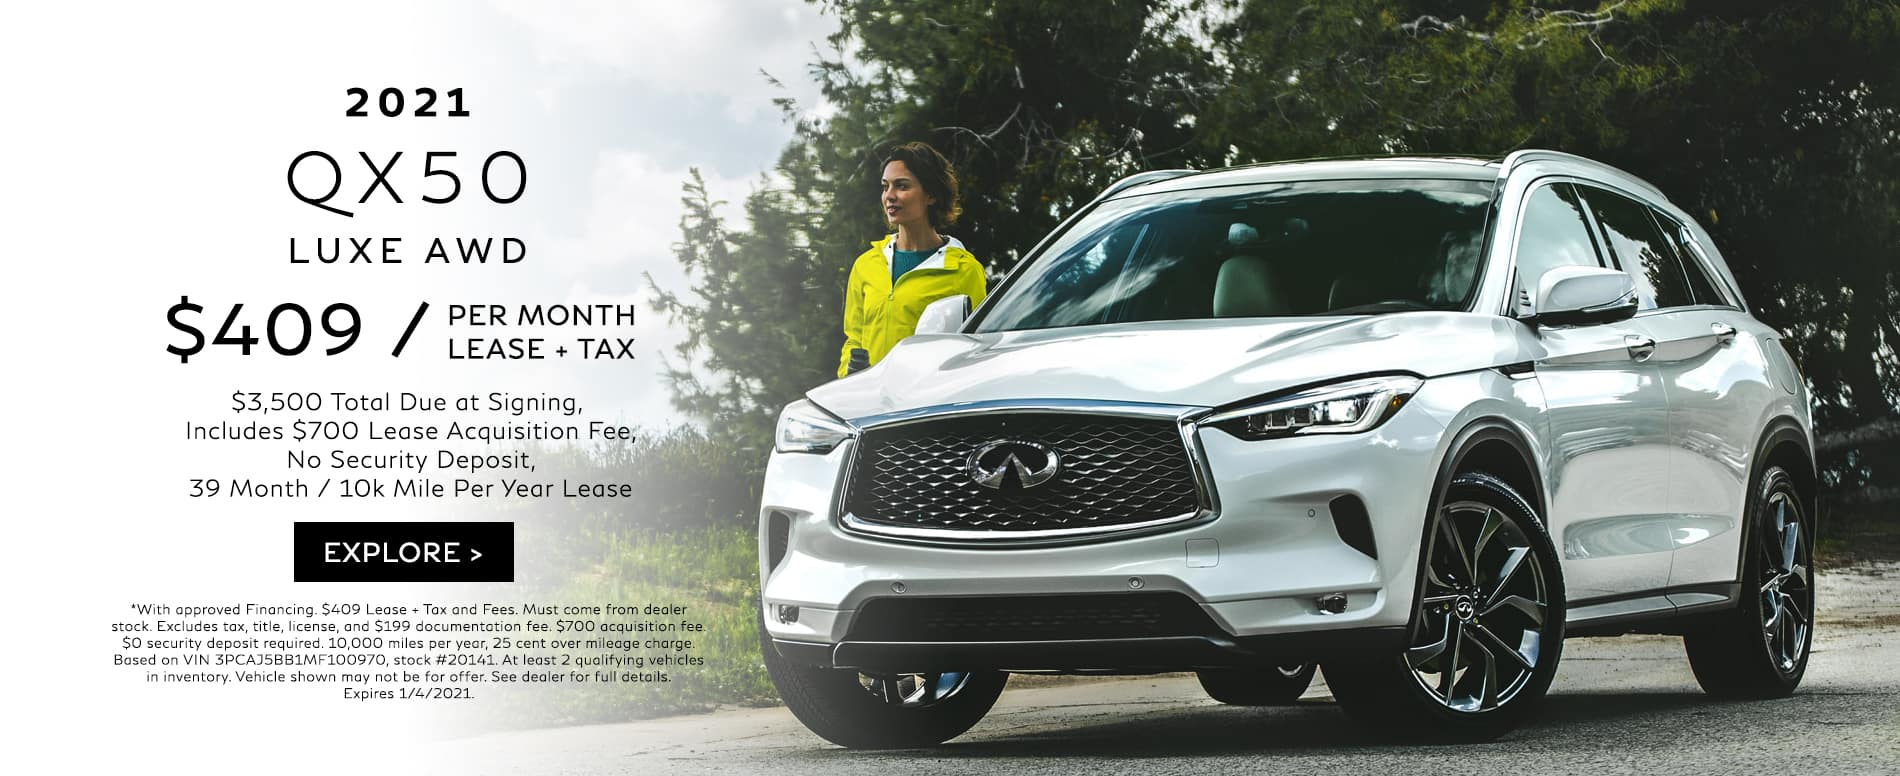 Lease a 2021 QX50 for $409/mo